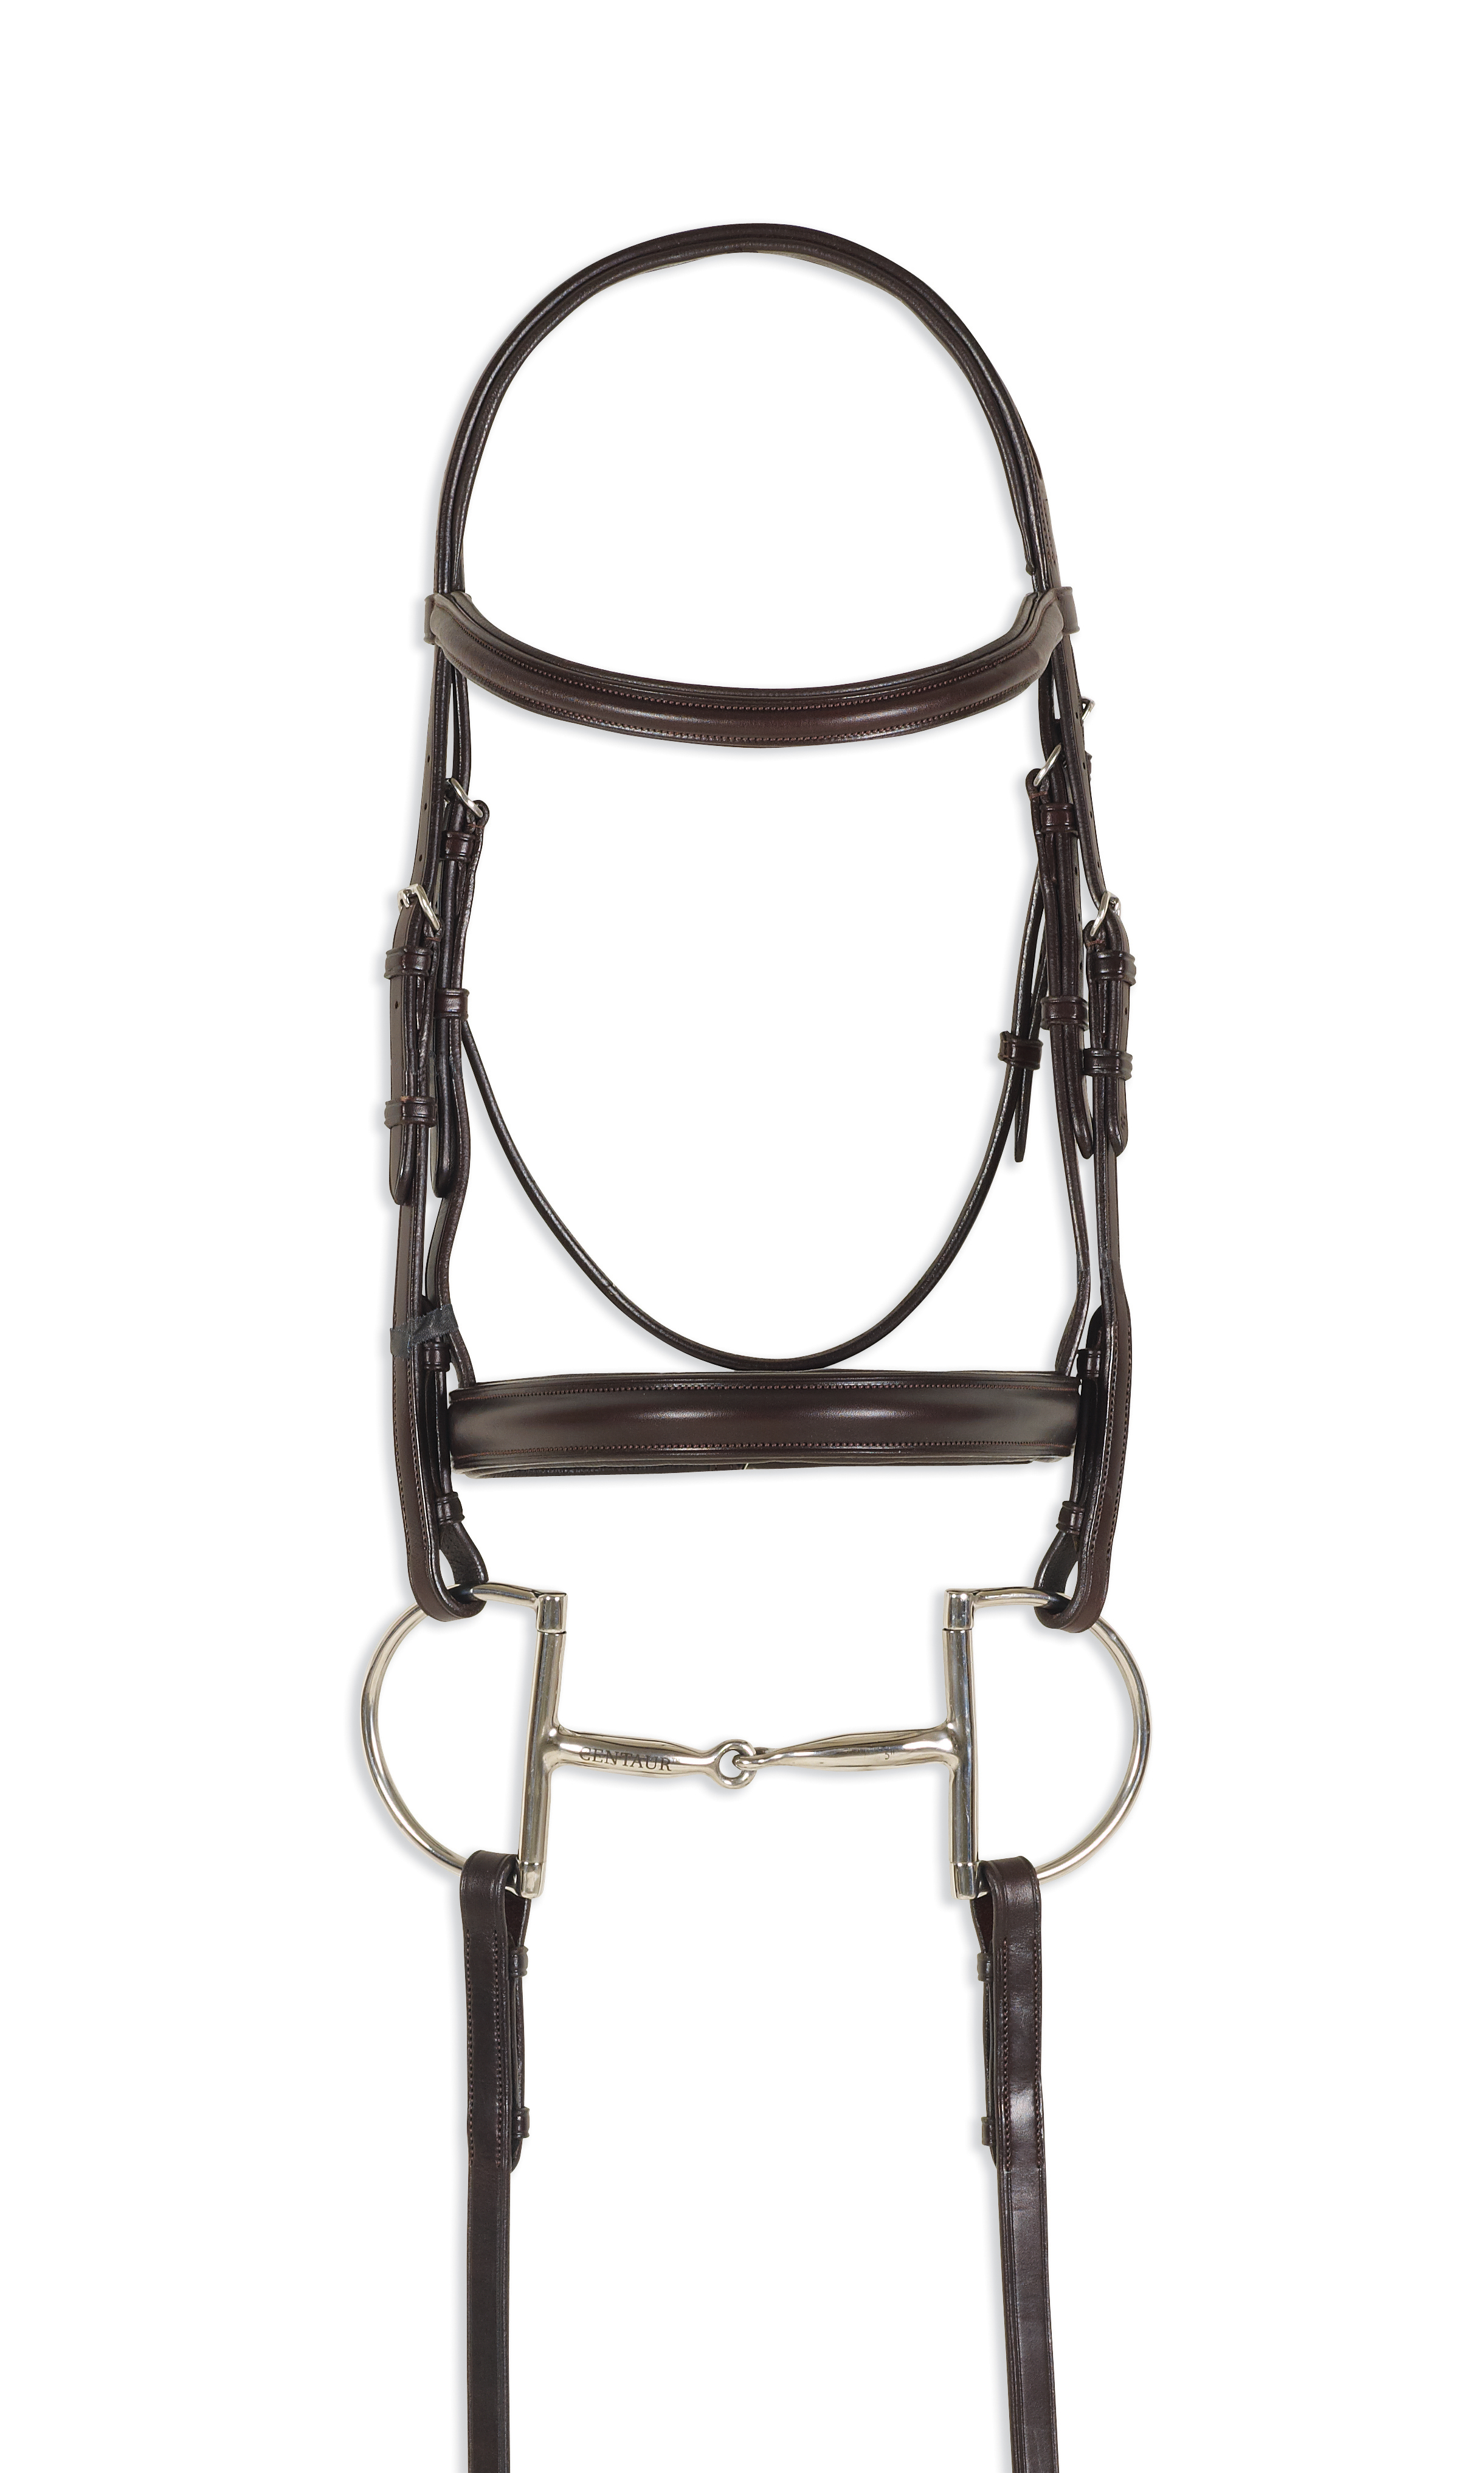 Ovation Breed Collection Qh Plain Raised Padded Bridle